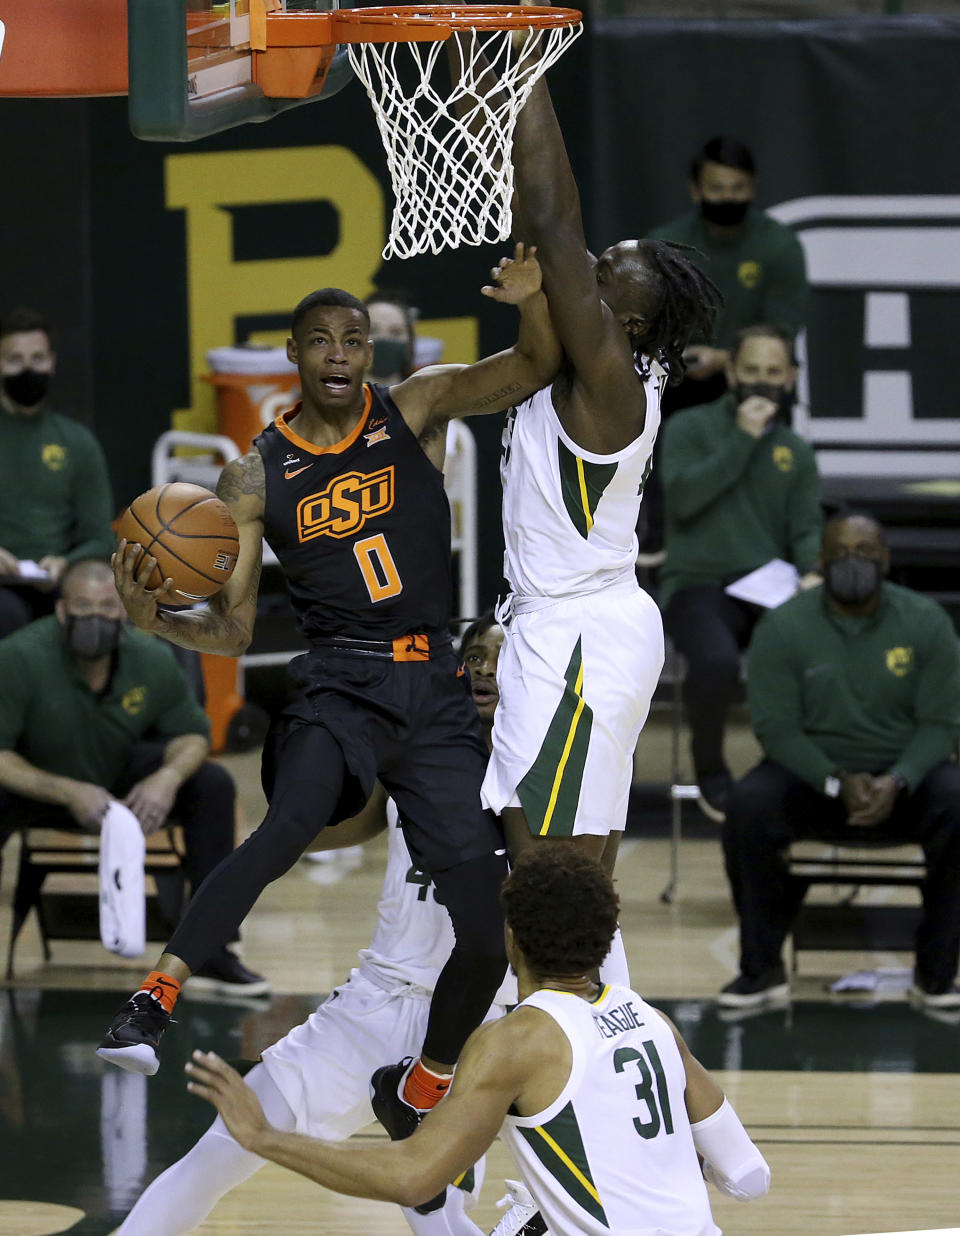 Oklahoma State guard Avery Anderson III (0) attempts a shot past Baylor forward Jonathan Tchamwa Tchatchoua (23) in the first half of an NCAA college basketball game, Thursday, March 4, 2021, in Waco, Texas. (AP Photo/Jerry Larson)